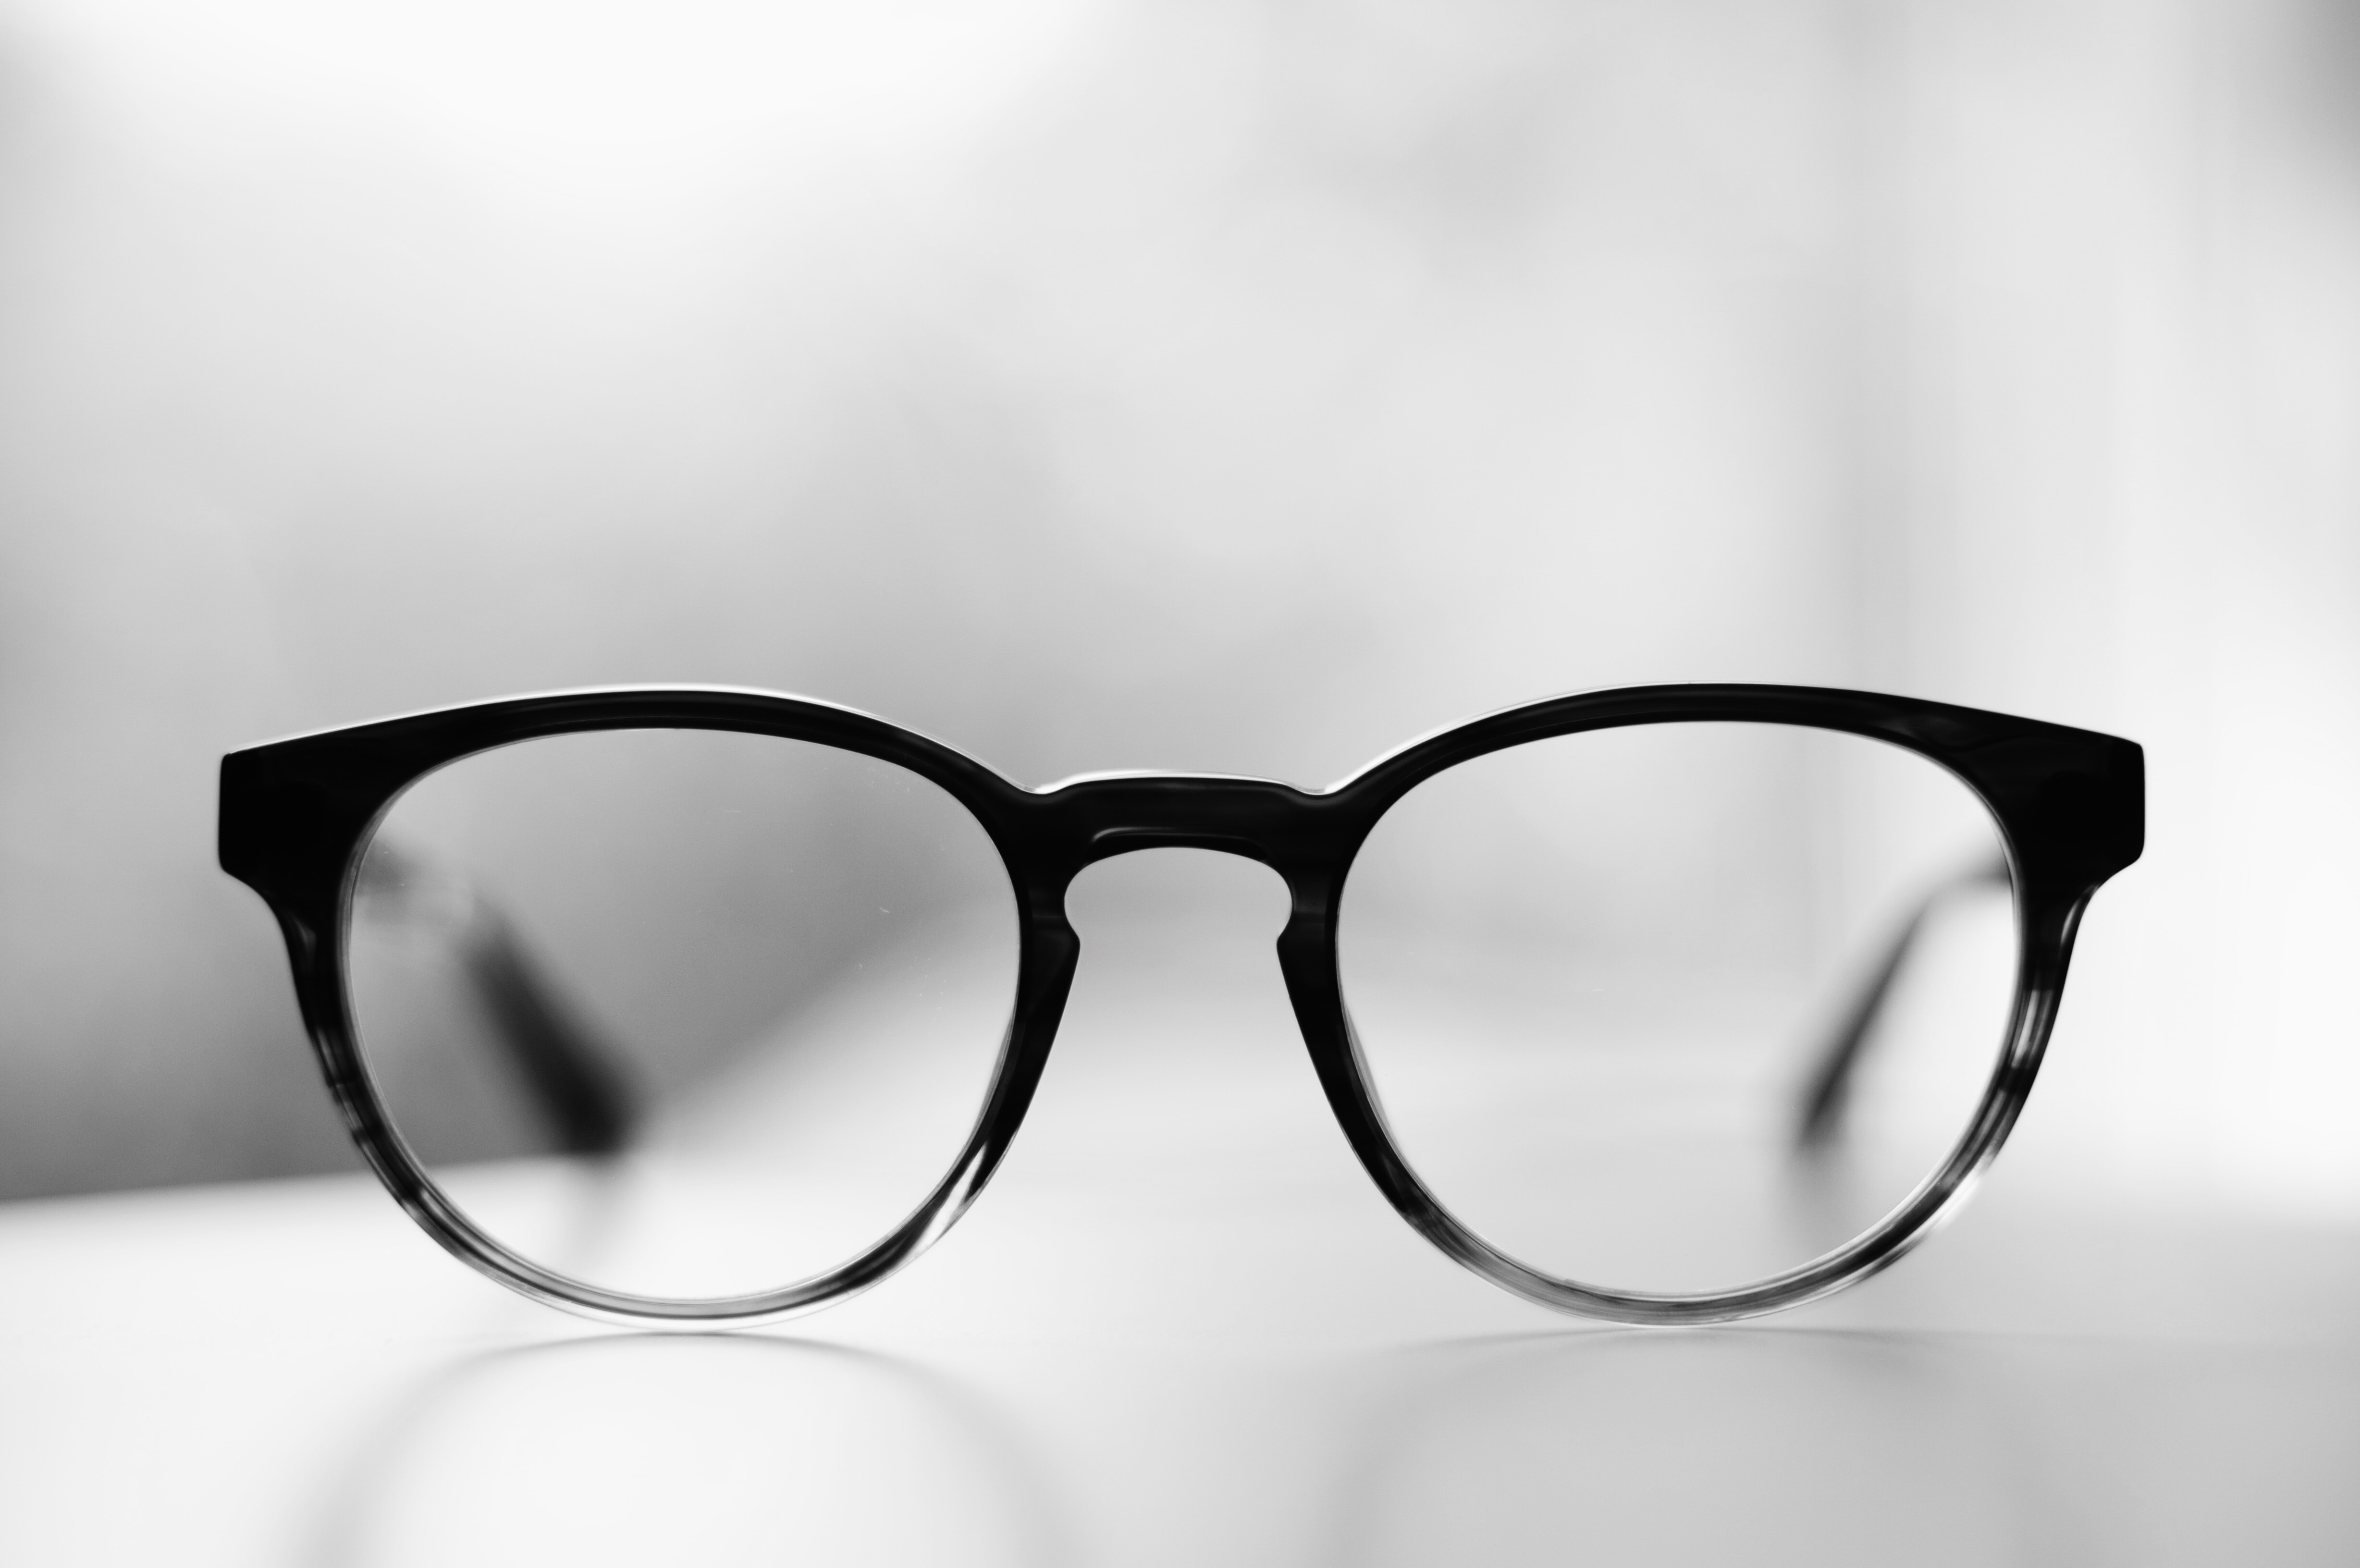 eyeglasses with black frames